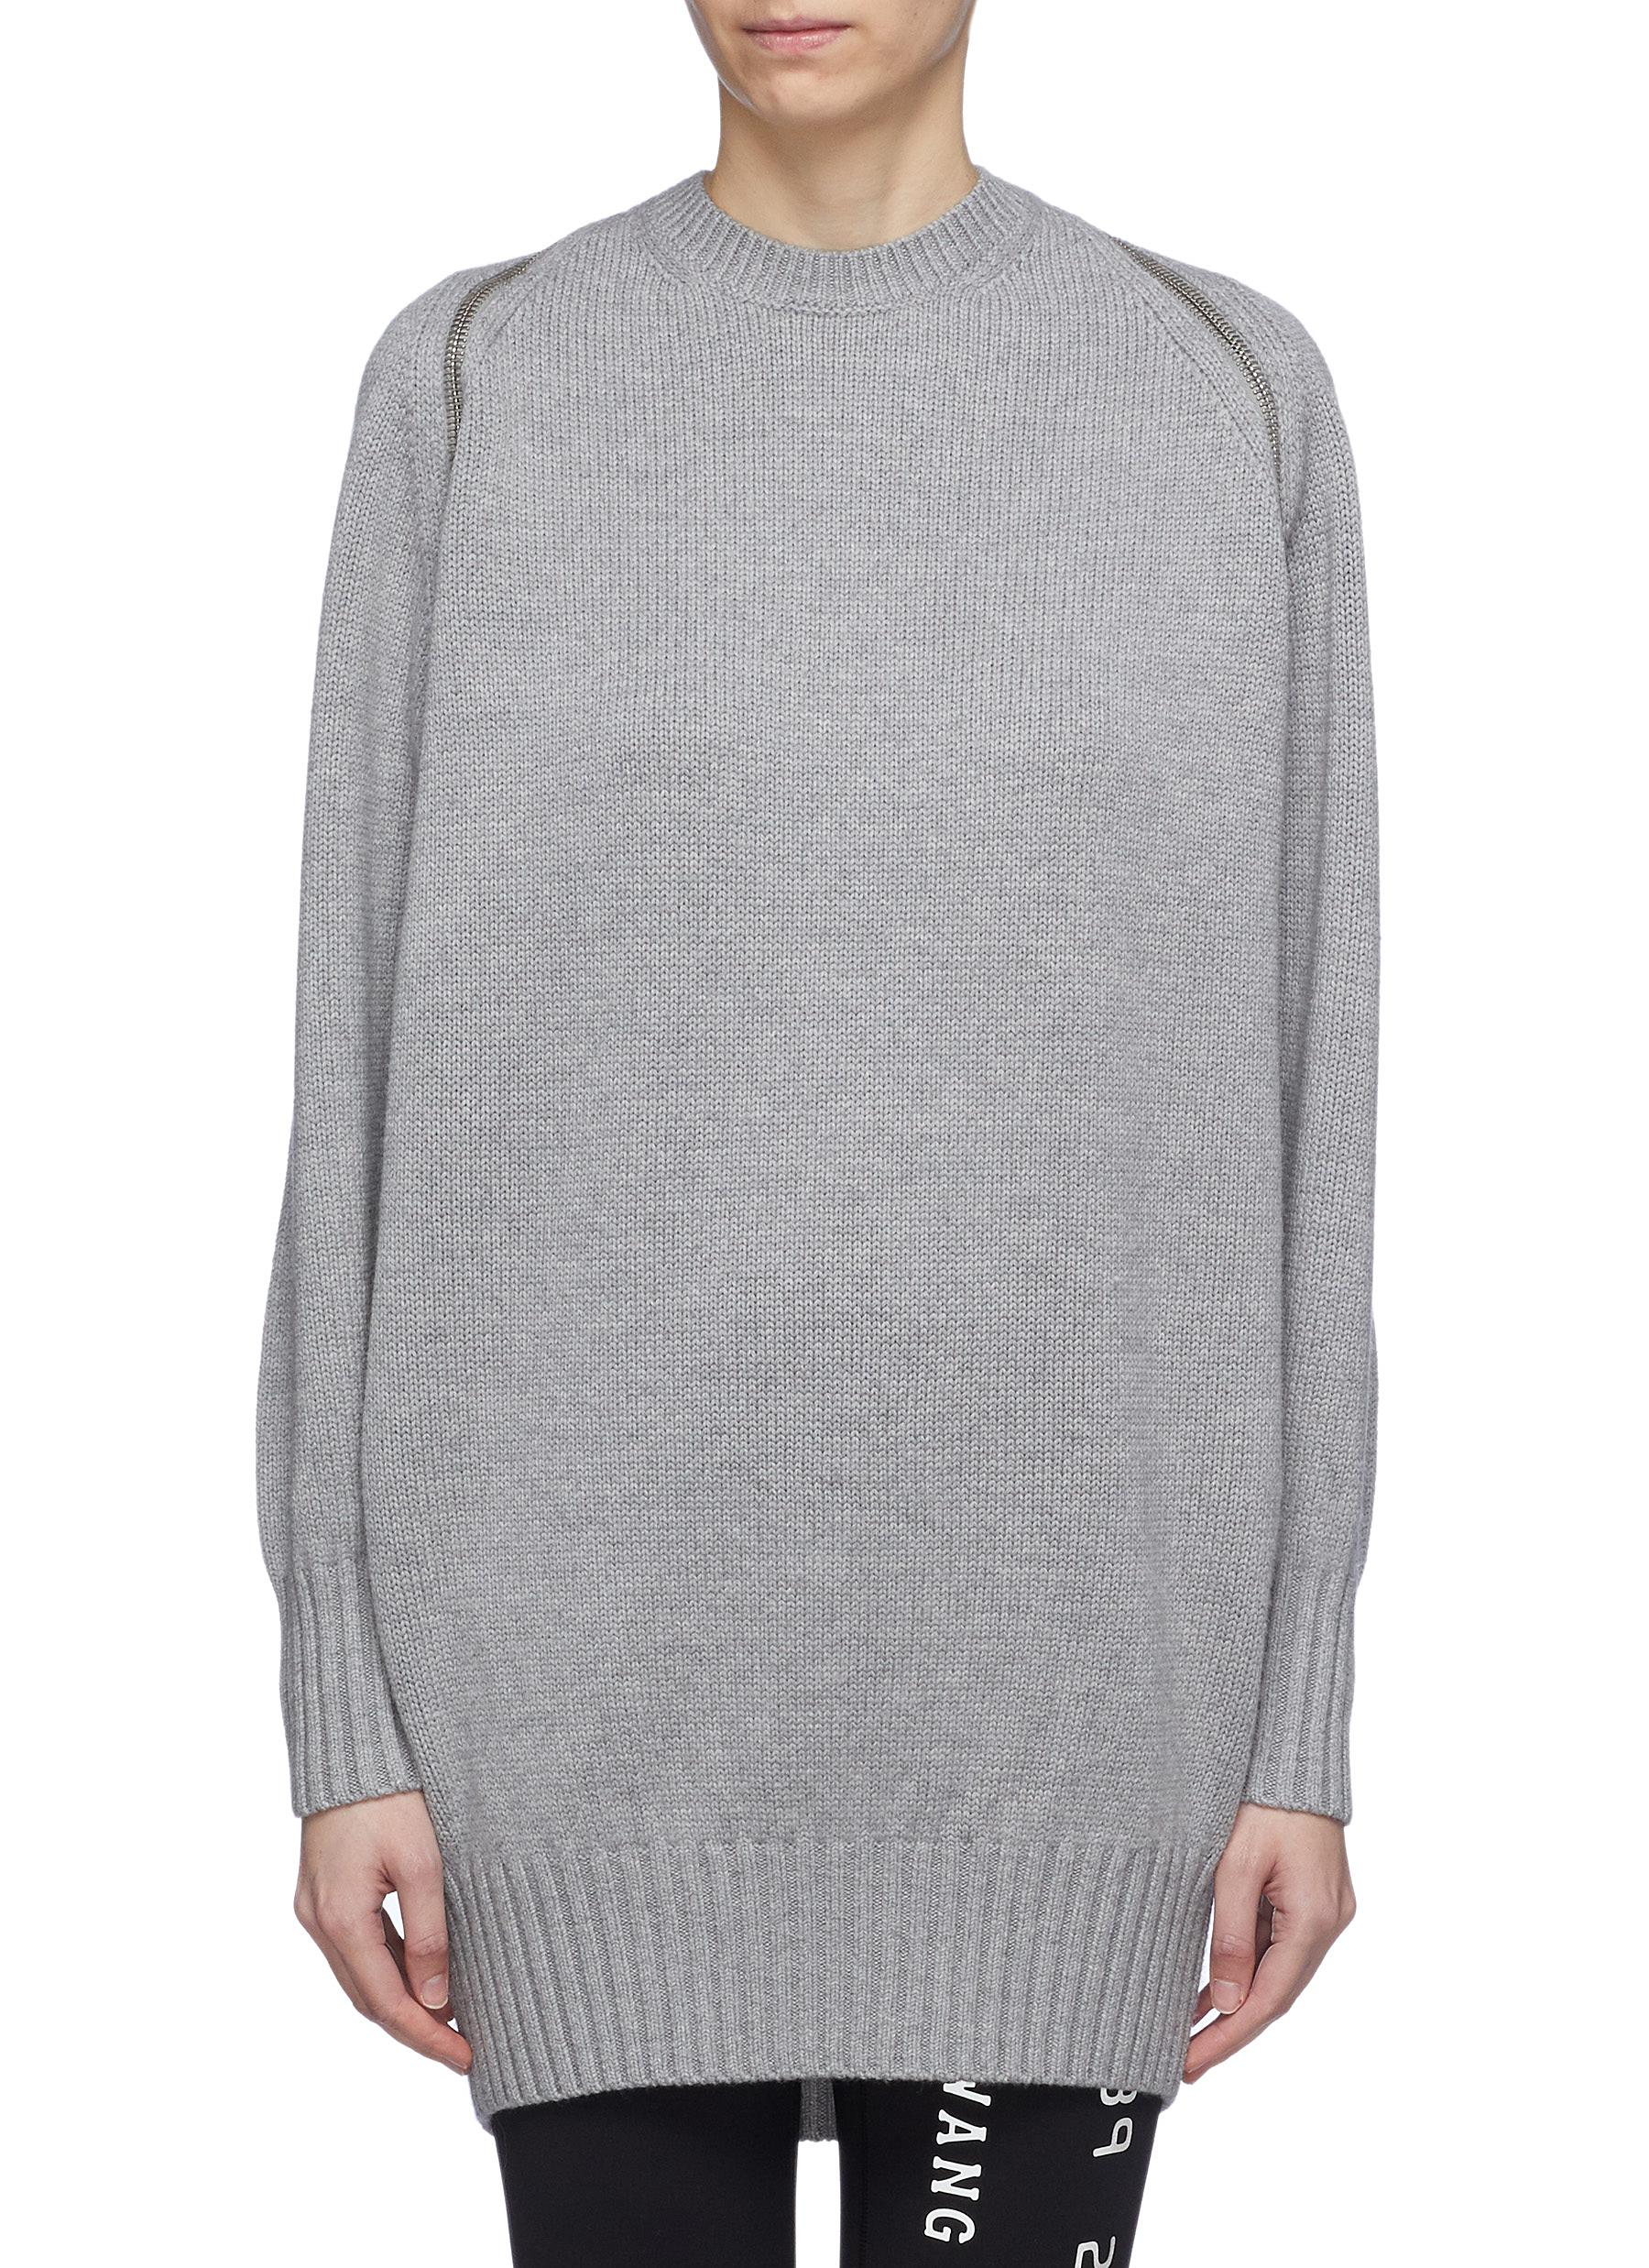 Buy Alexander Wang Knitwear Zip shoulder Merino wool sweater